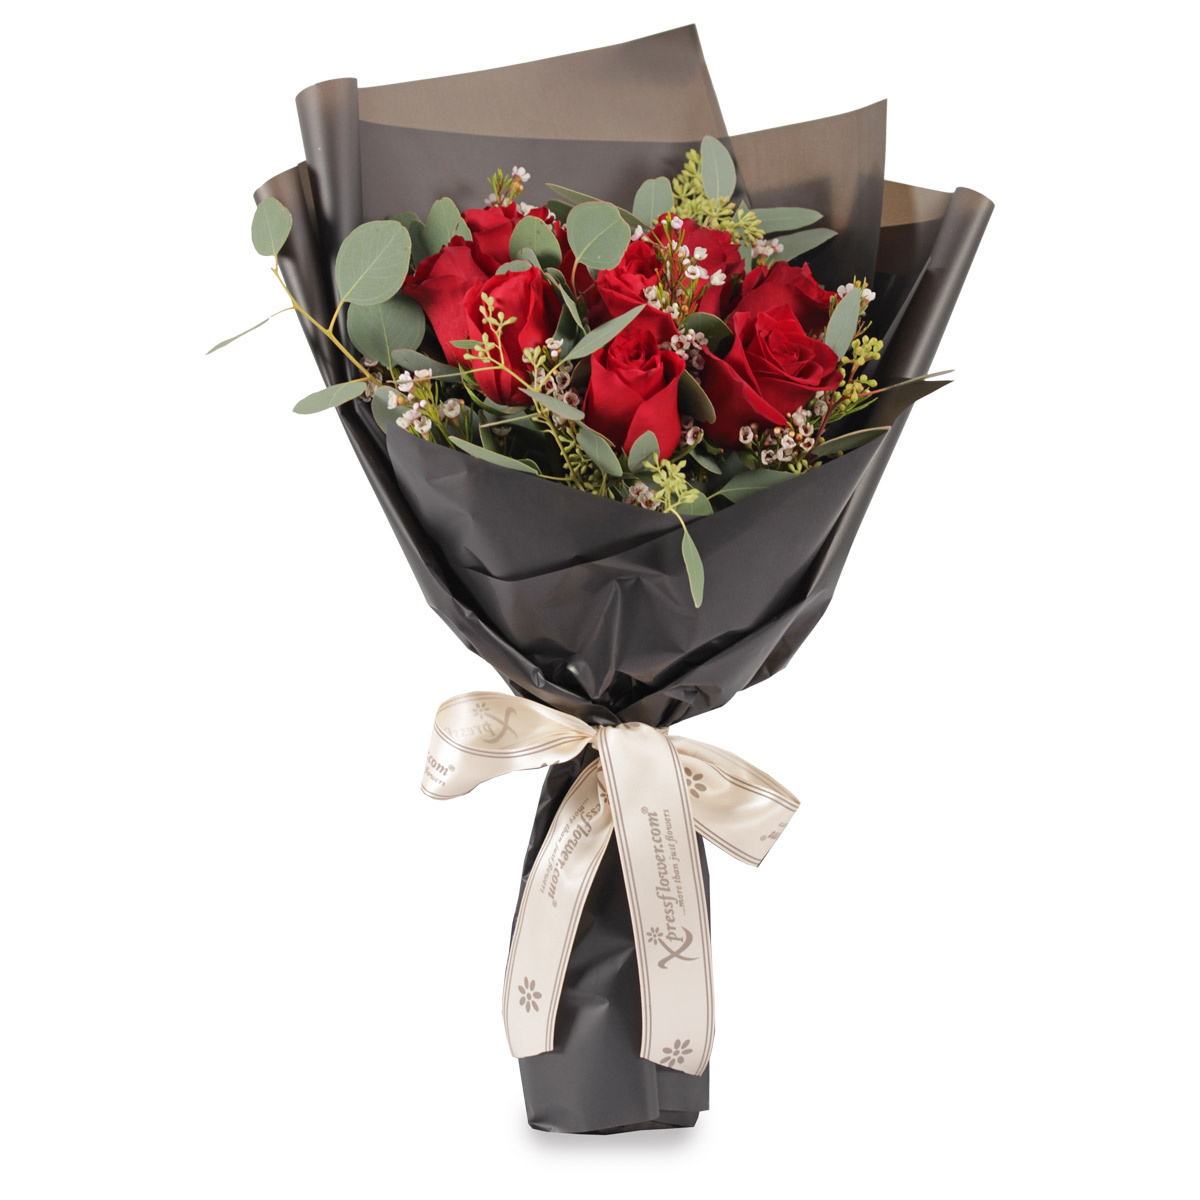 VD1704 12 stalks red roses bouquet